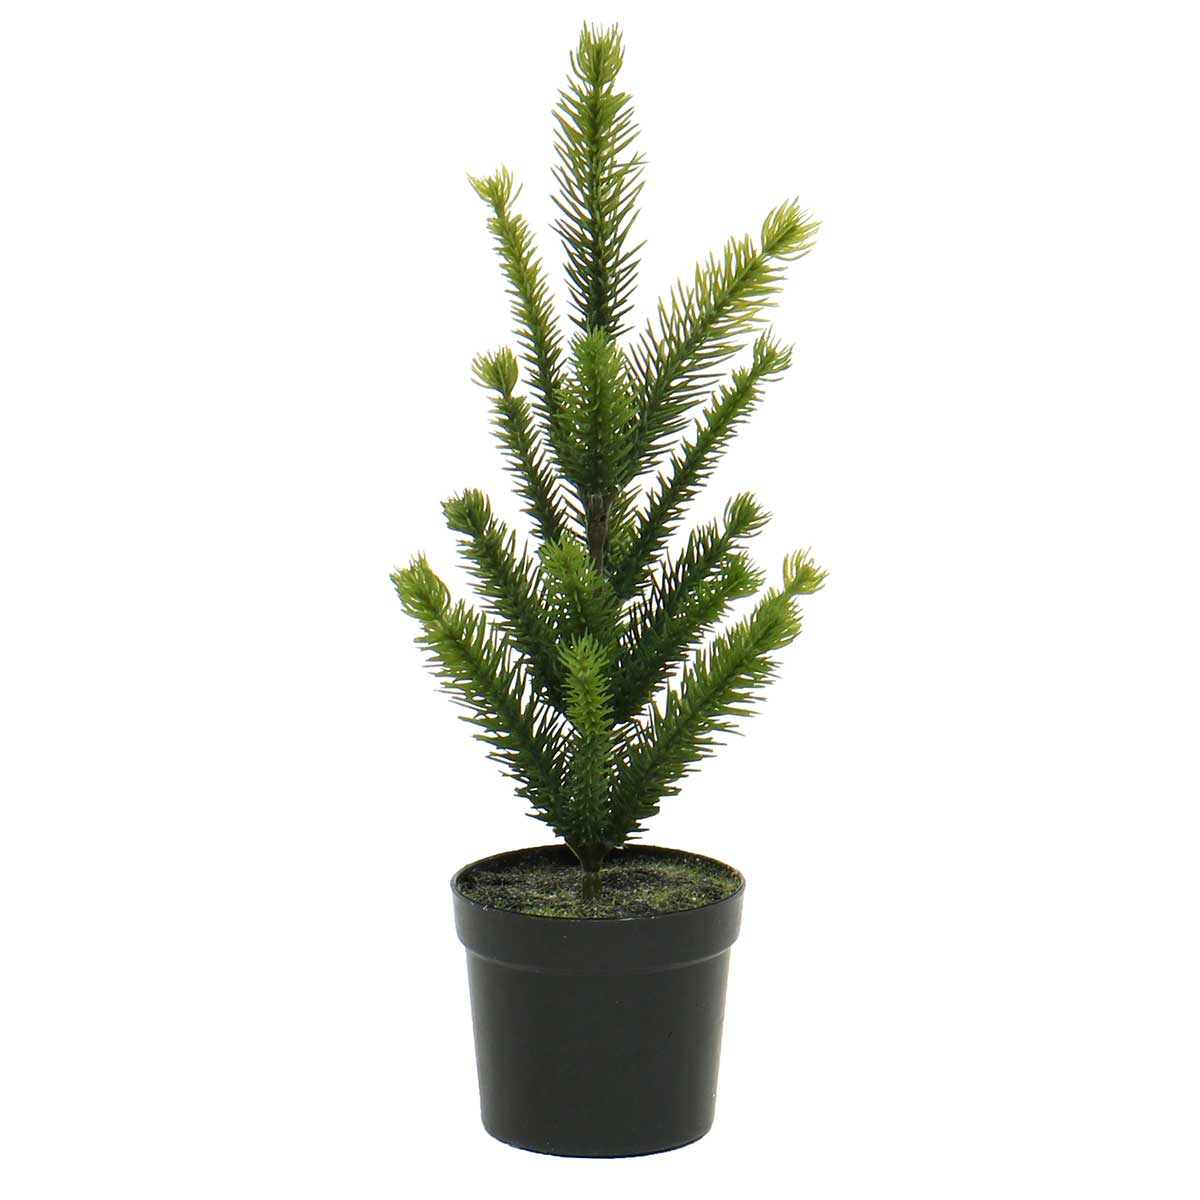 FIR TREE IN BLACK POT